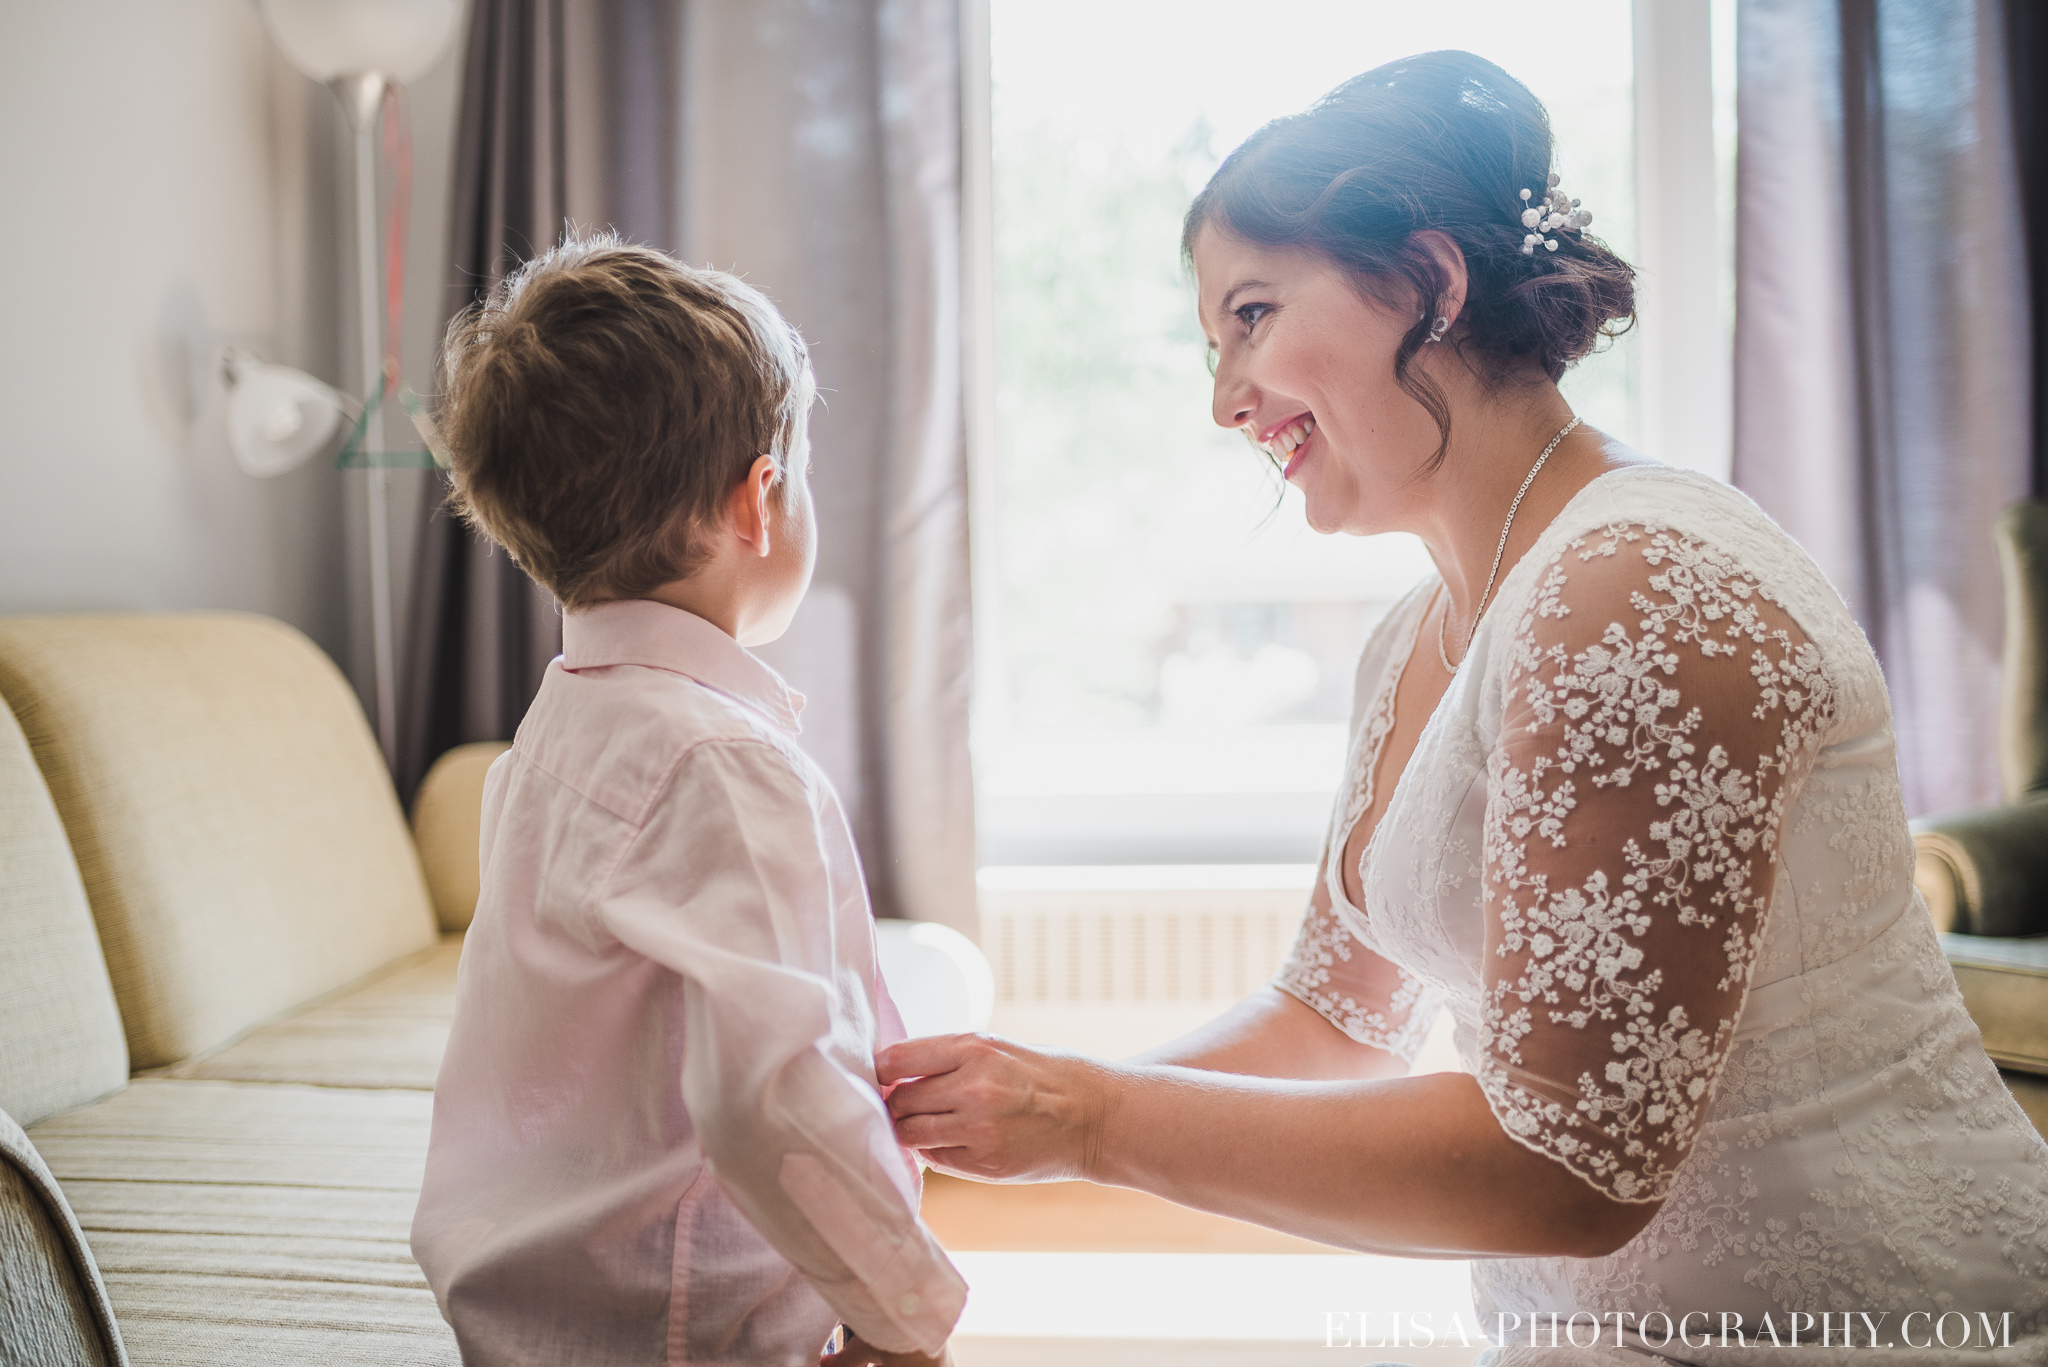 photo mariage domaine cataraqui britannique wedding preparatif enfant 2035 - Galerie photos de mariage